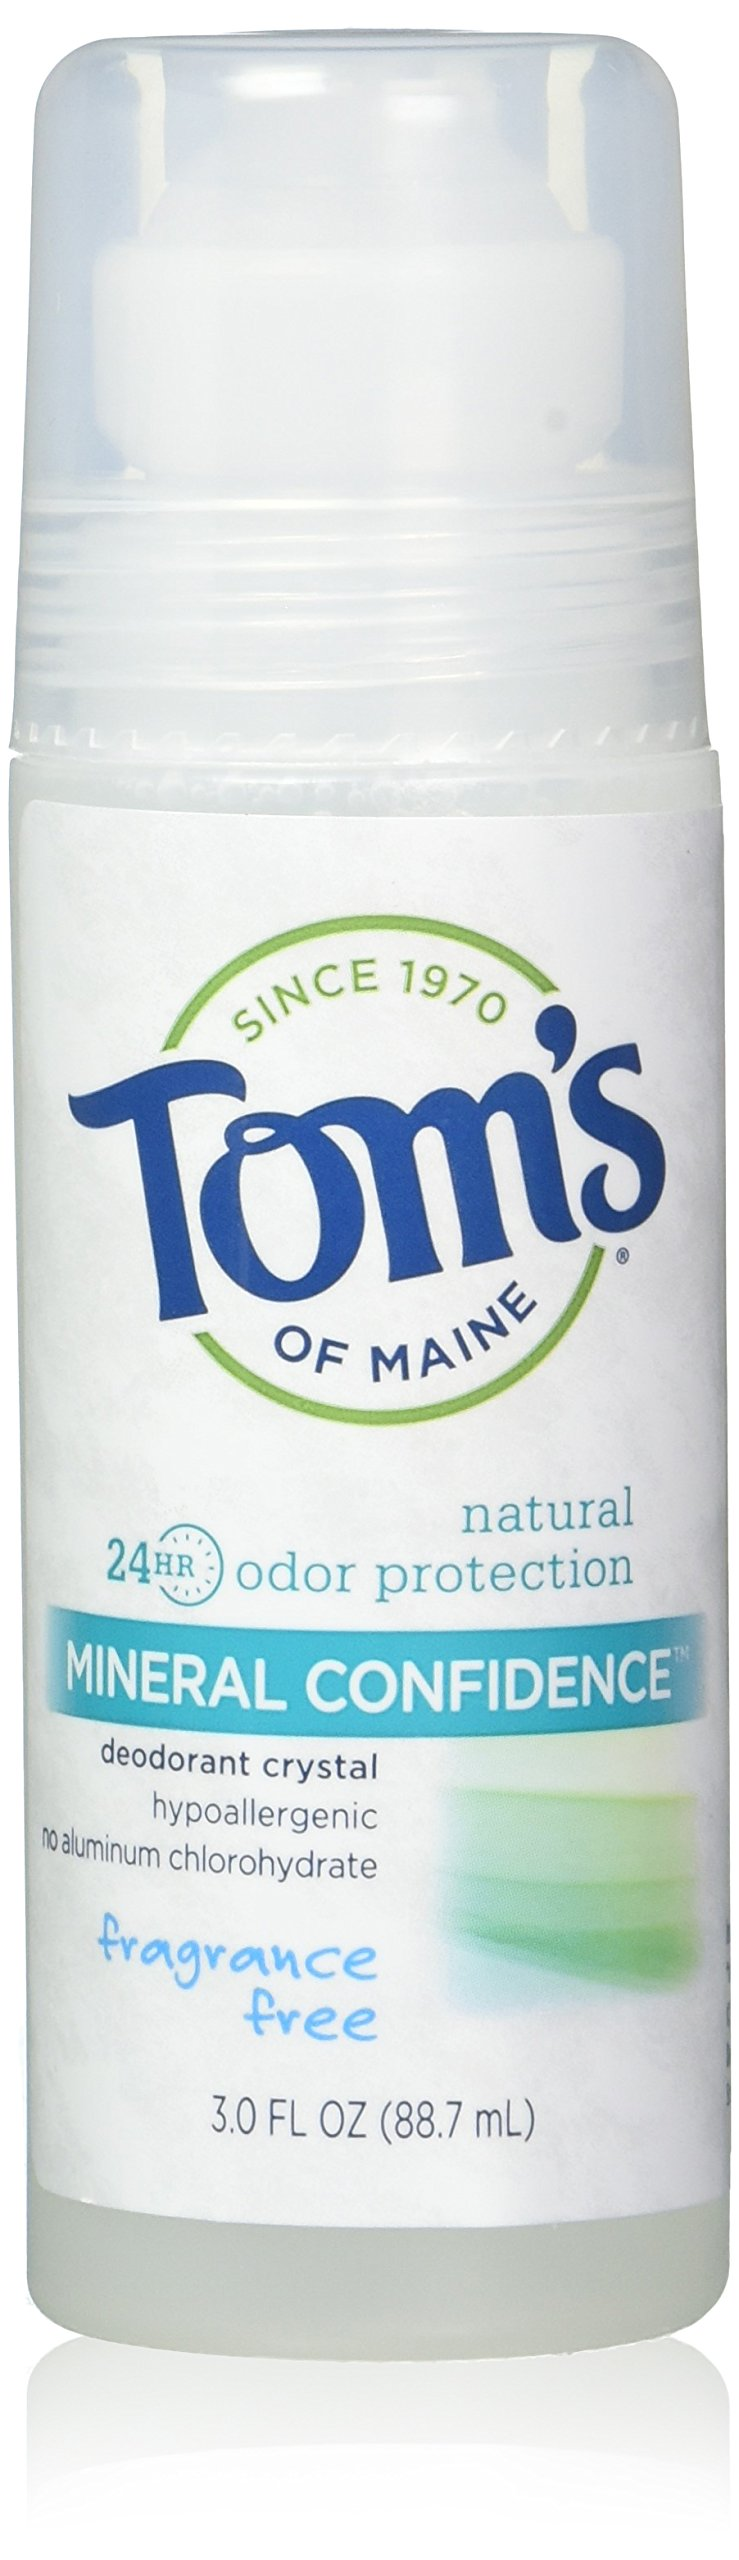 Tom S Of Maine Natural Wicked Fresh Mouth Wash Bottle Peppermint